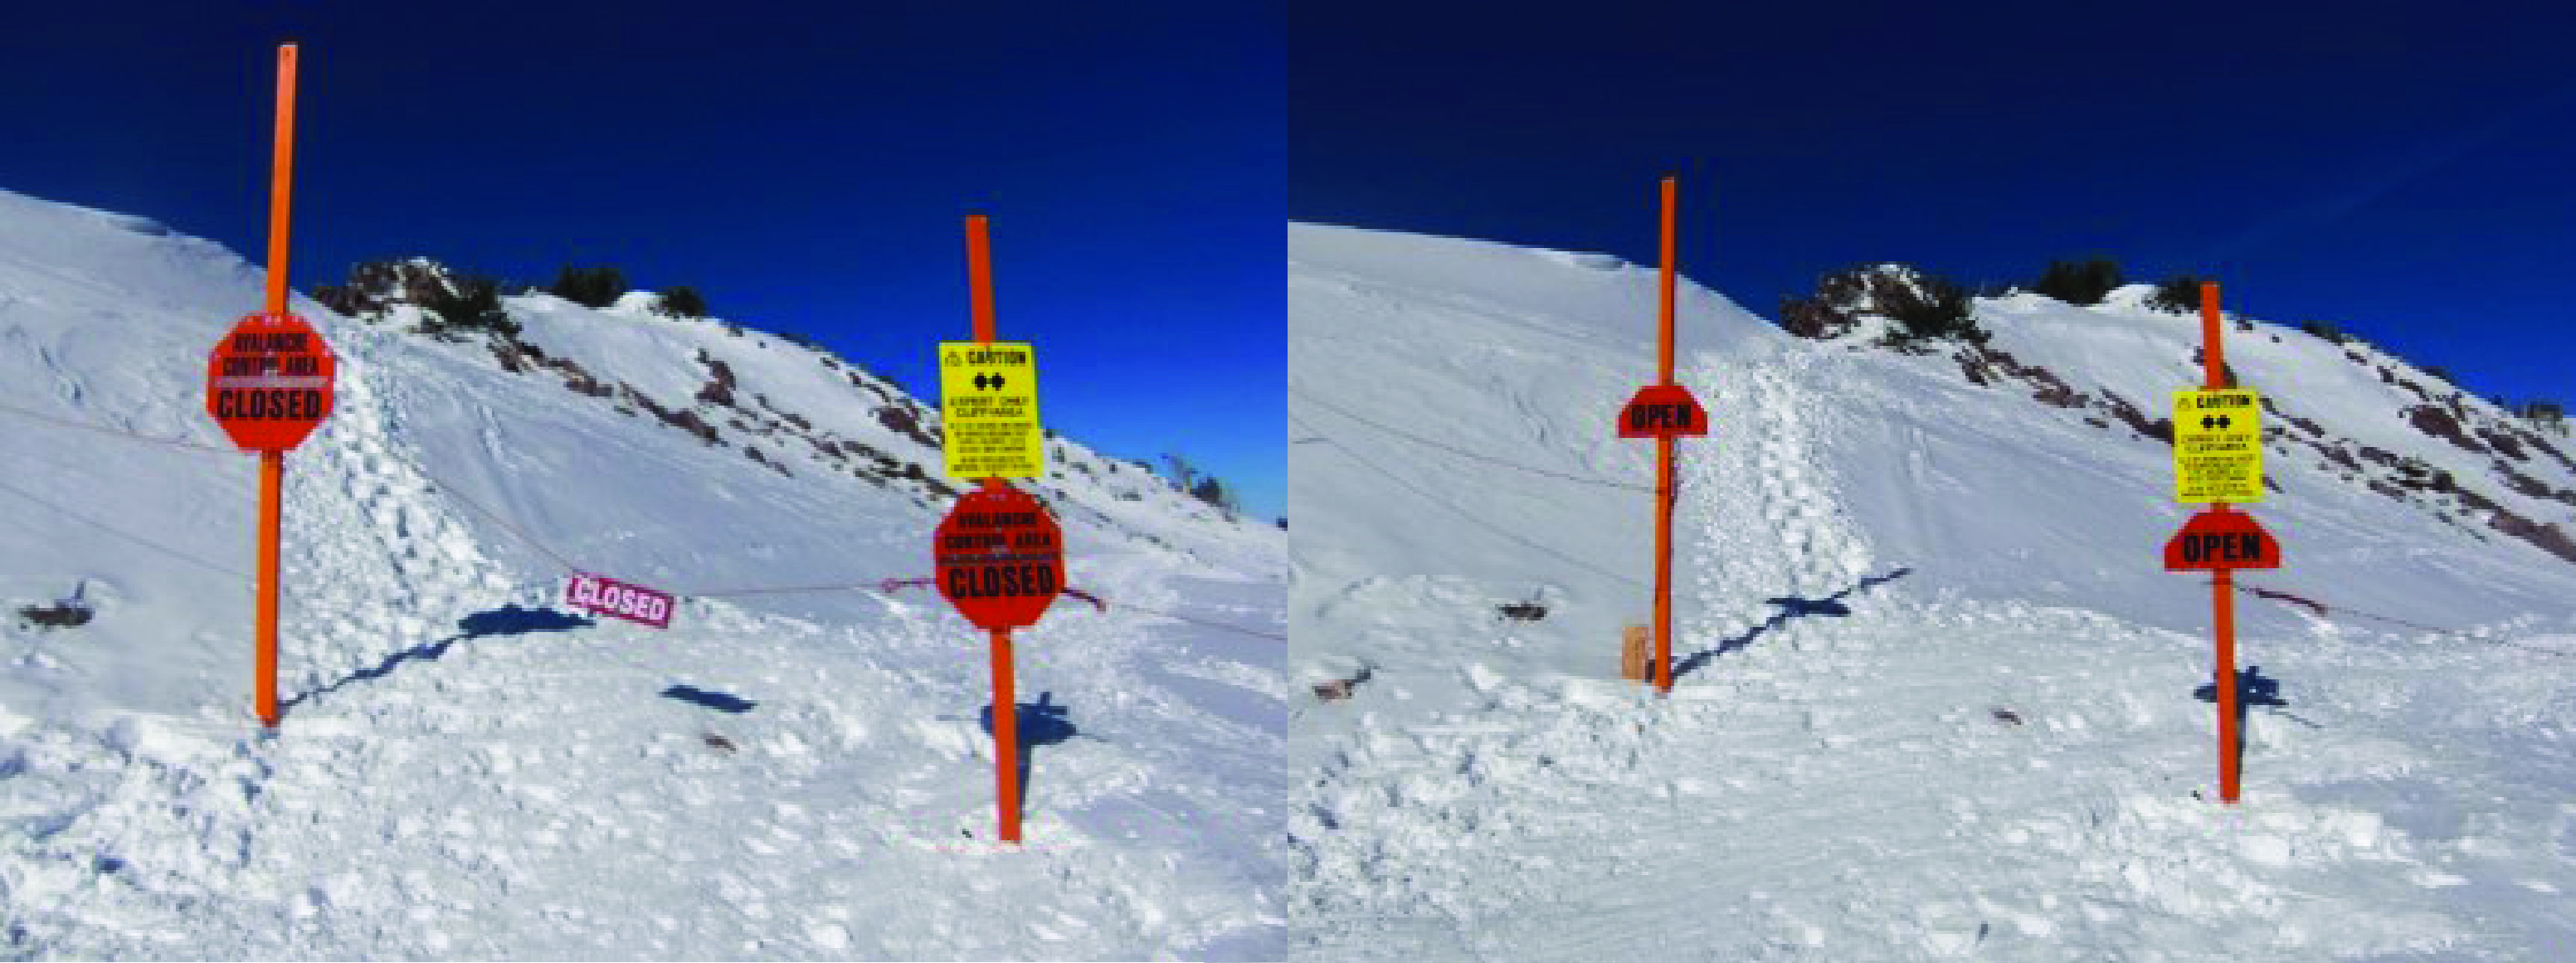 Avalanche Area open and closed gates